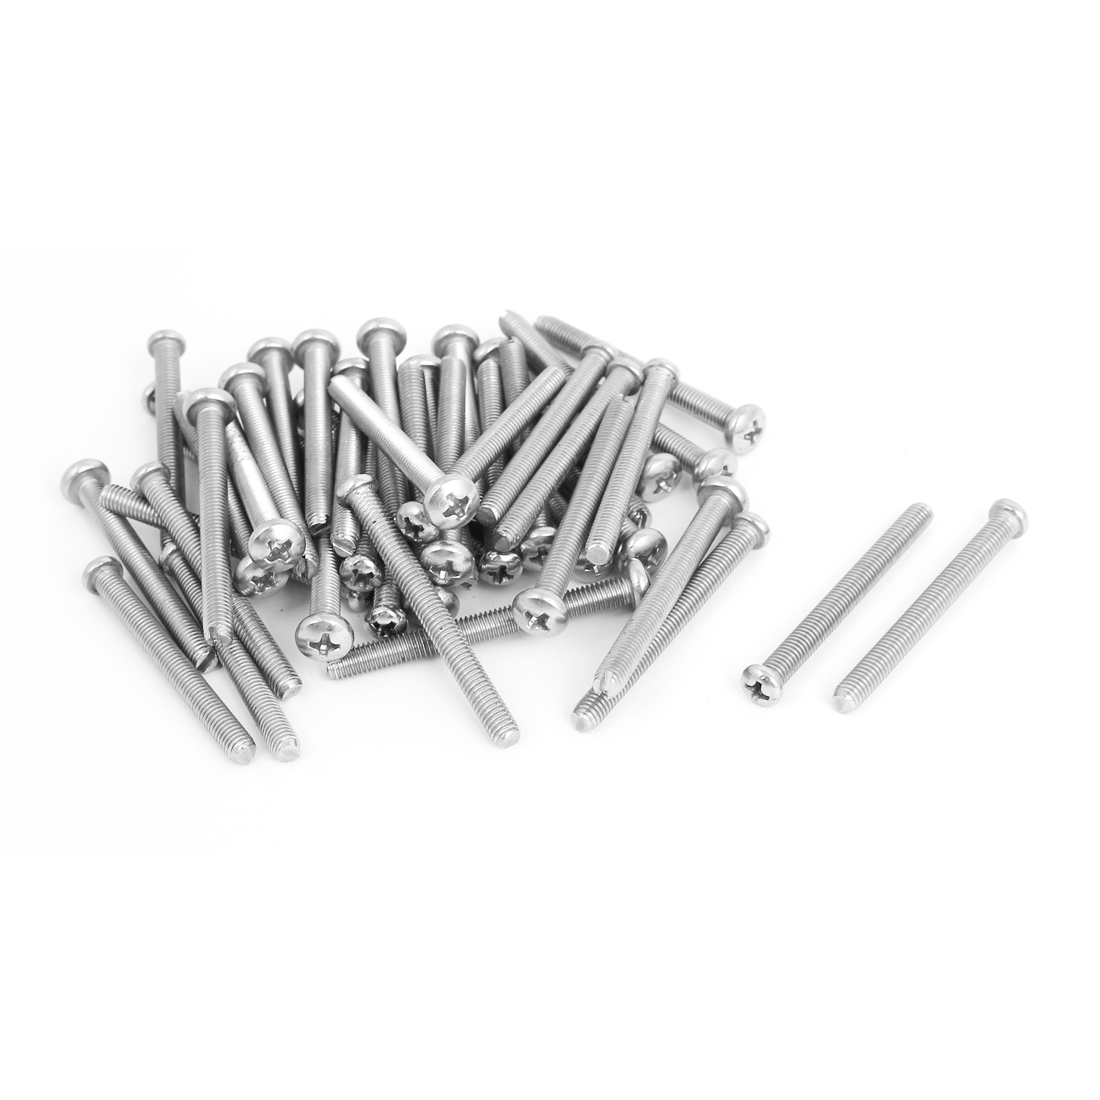 M5x50mm Stainless Steel Phillips Round Pan Head Machine Screws 50pcs